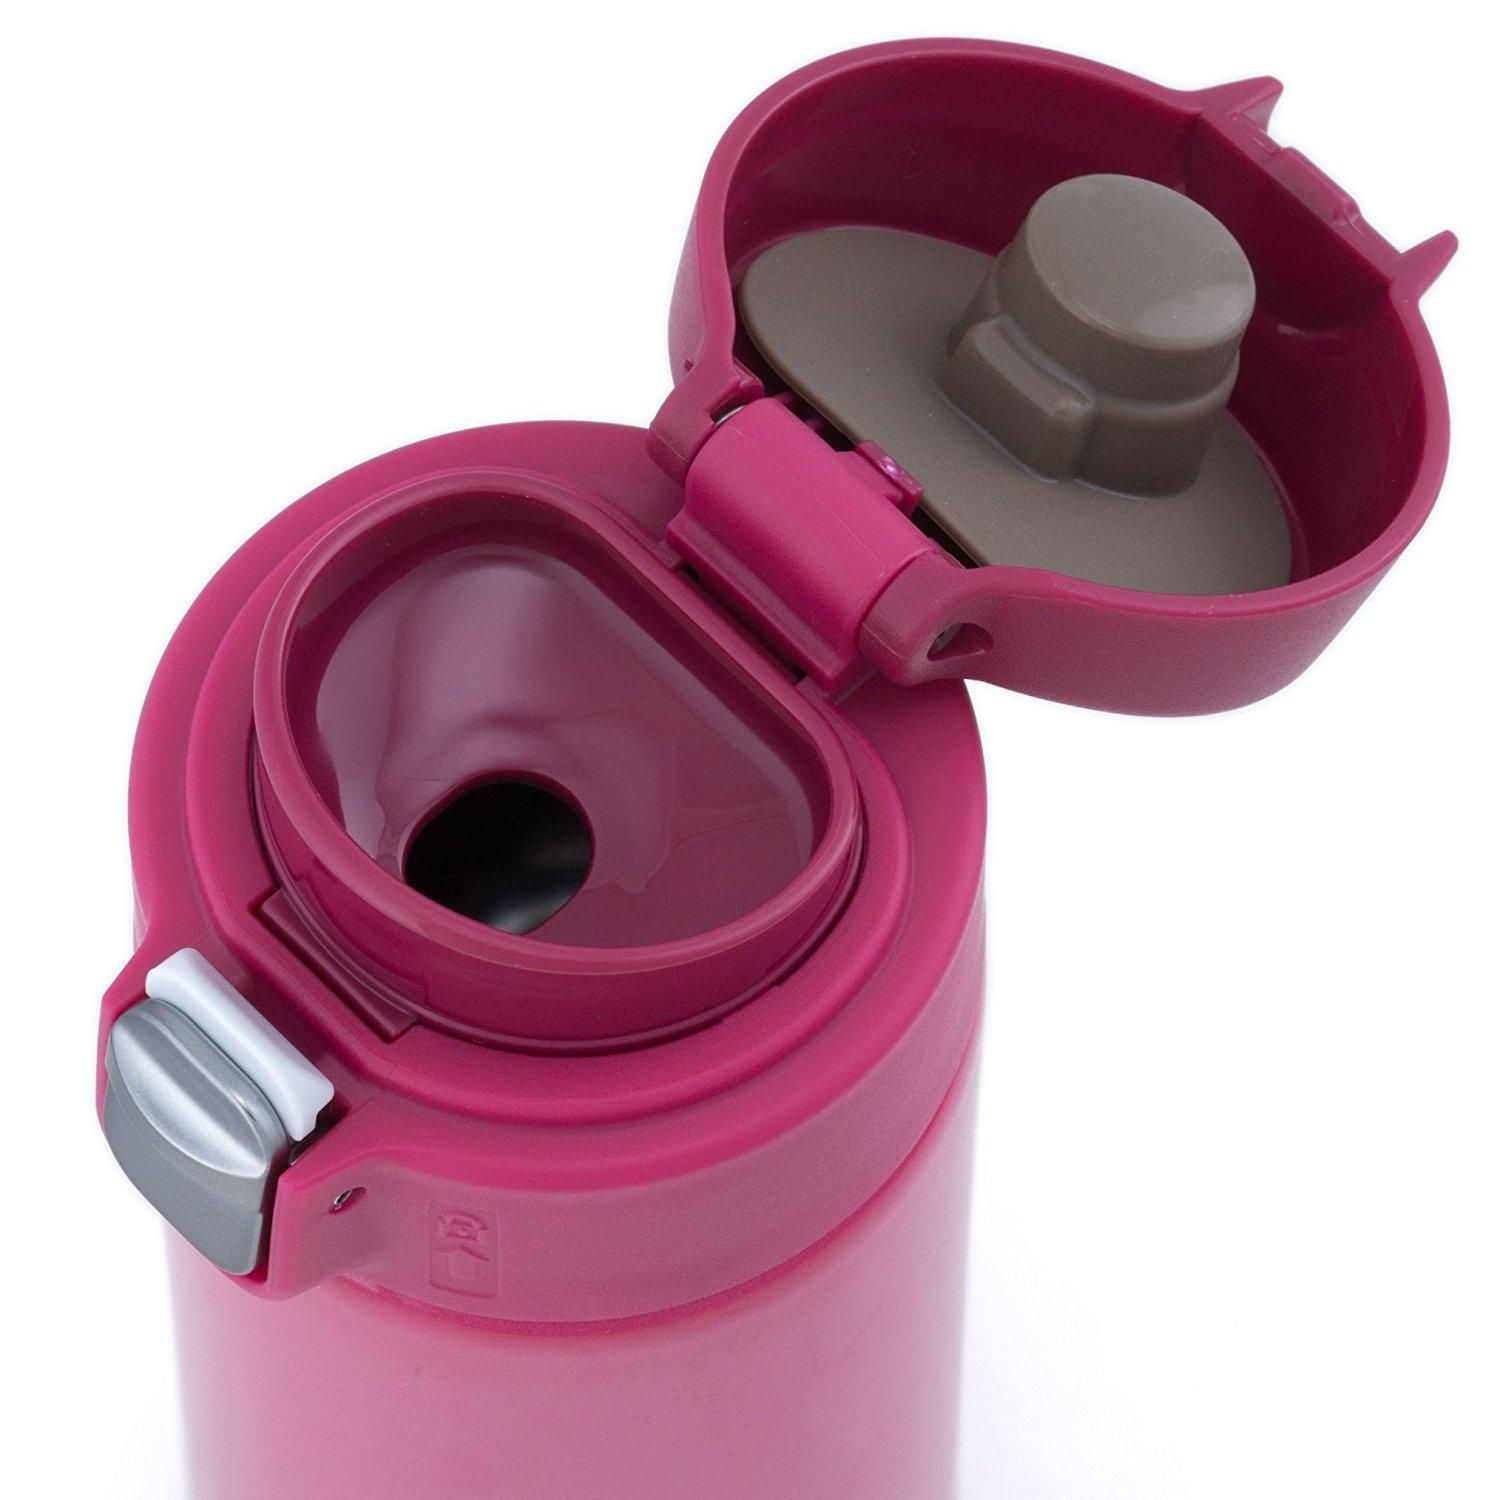 Tiger Mmj A048 Pa Vacuum Insulated Stainless Steel Travel Mug With Flip Open Lid Double Wall